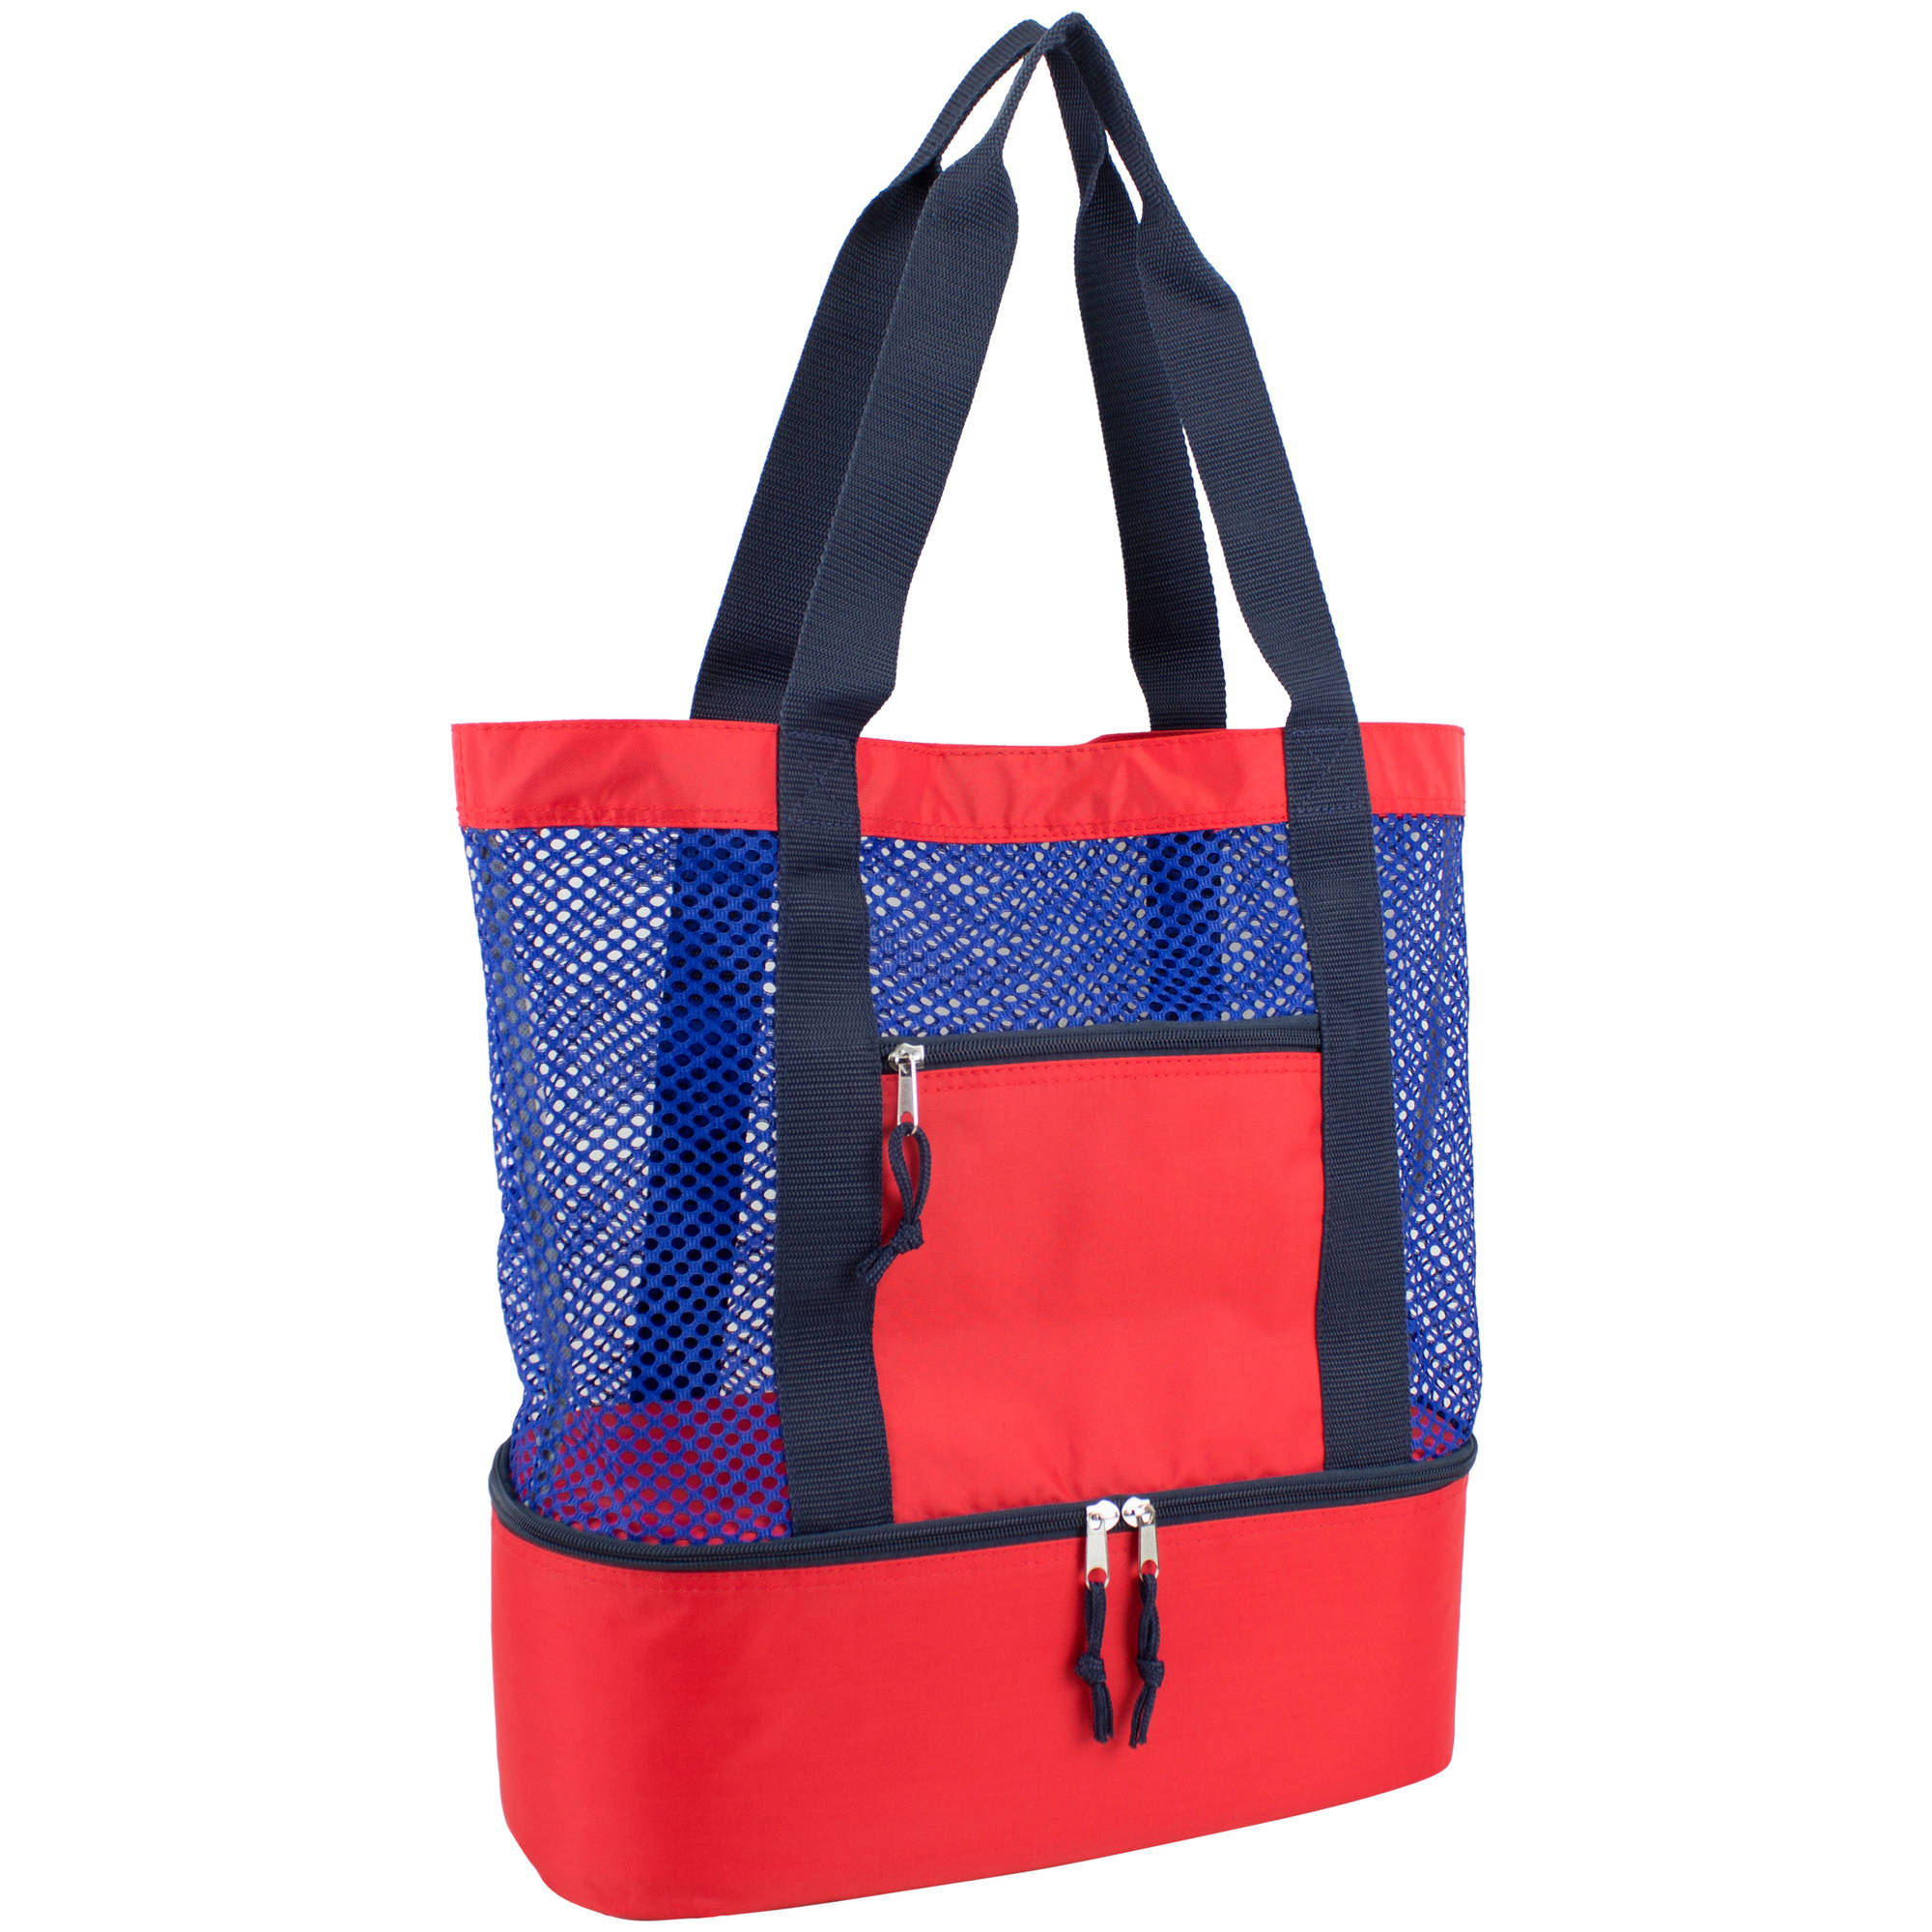 Eastsport Cooler Beach Tote Bag